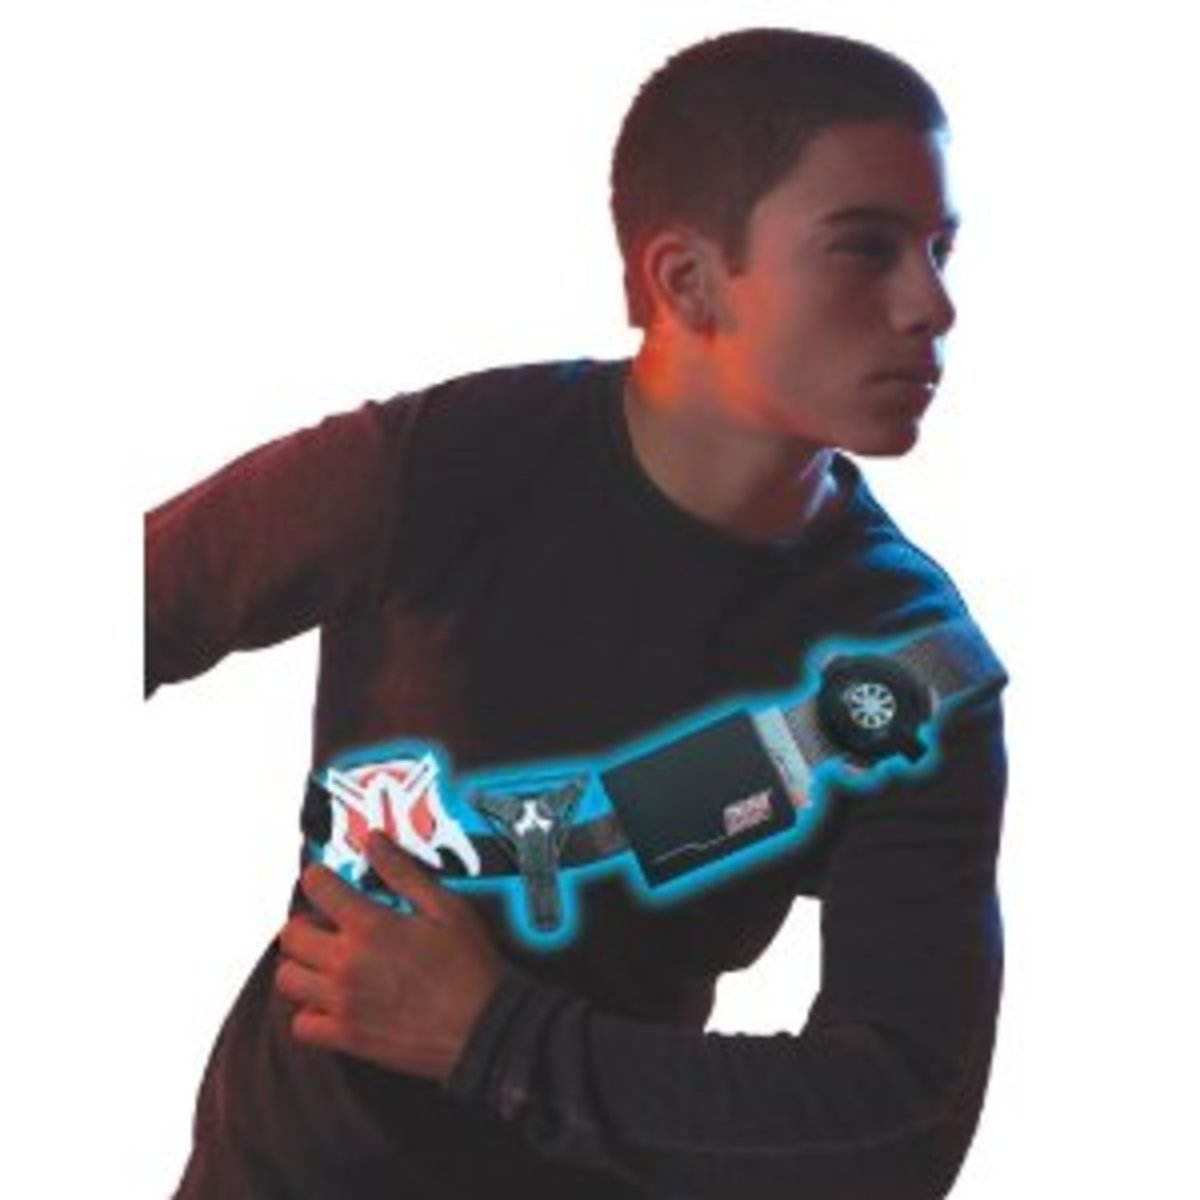 The Coolest Spy Gear for Kids | HubPages